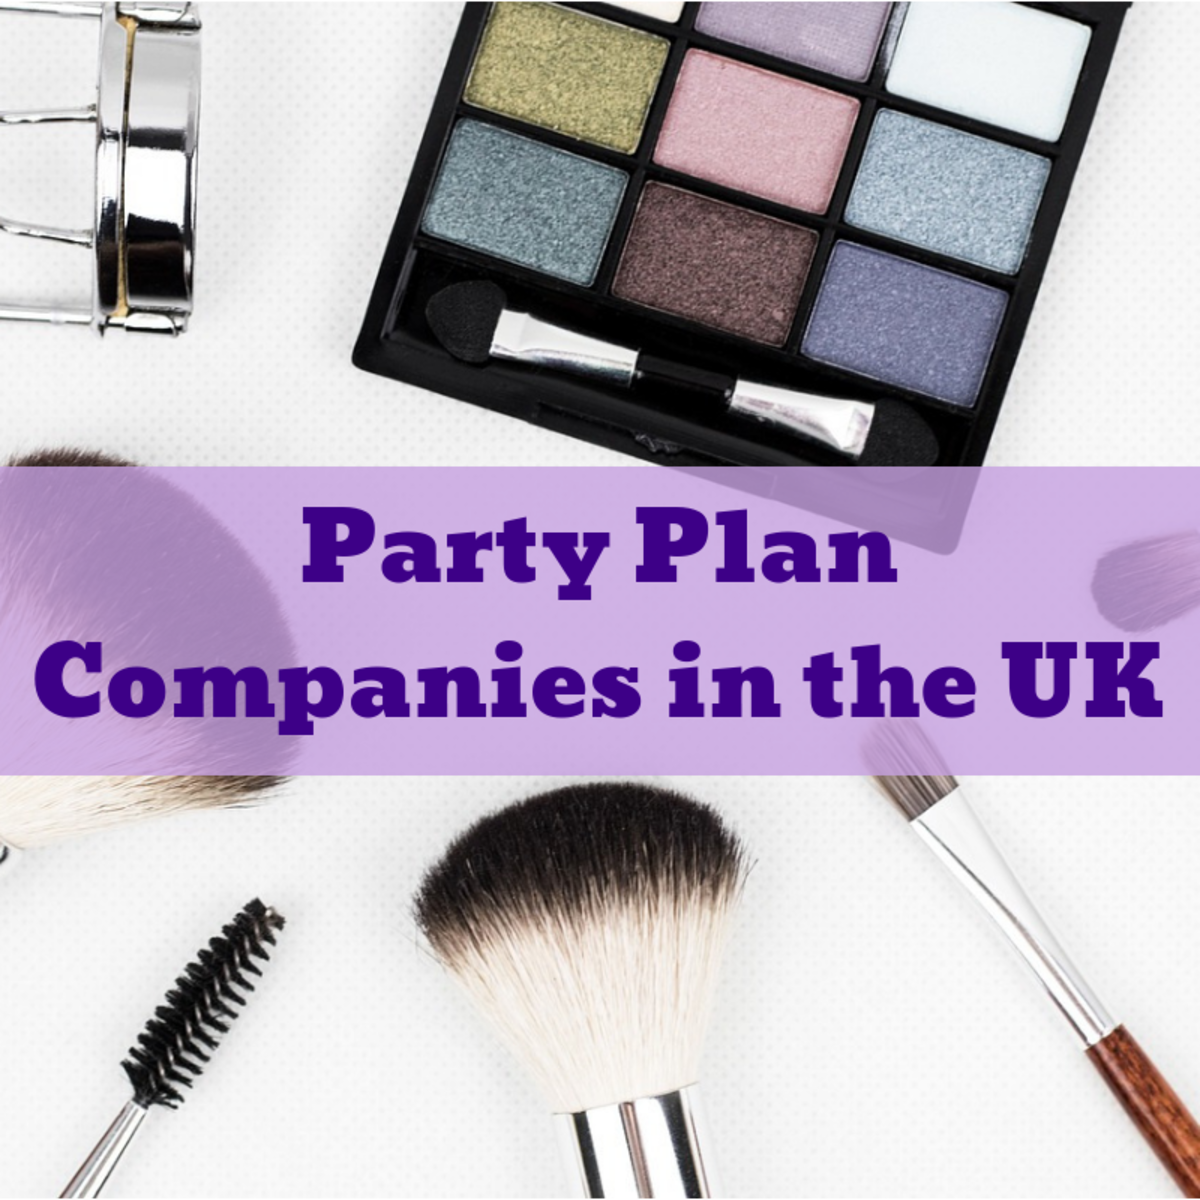 Whether you want to sell housewares, perfume or makeup, you can use party plan to earn income at your own pace.